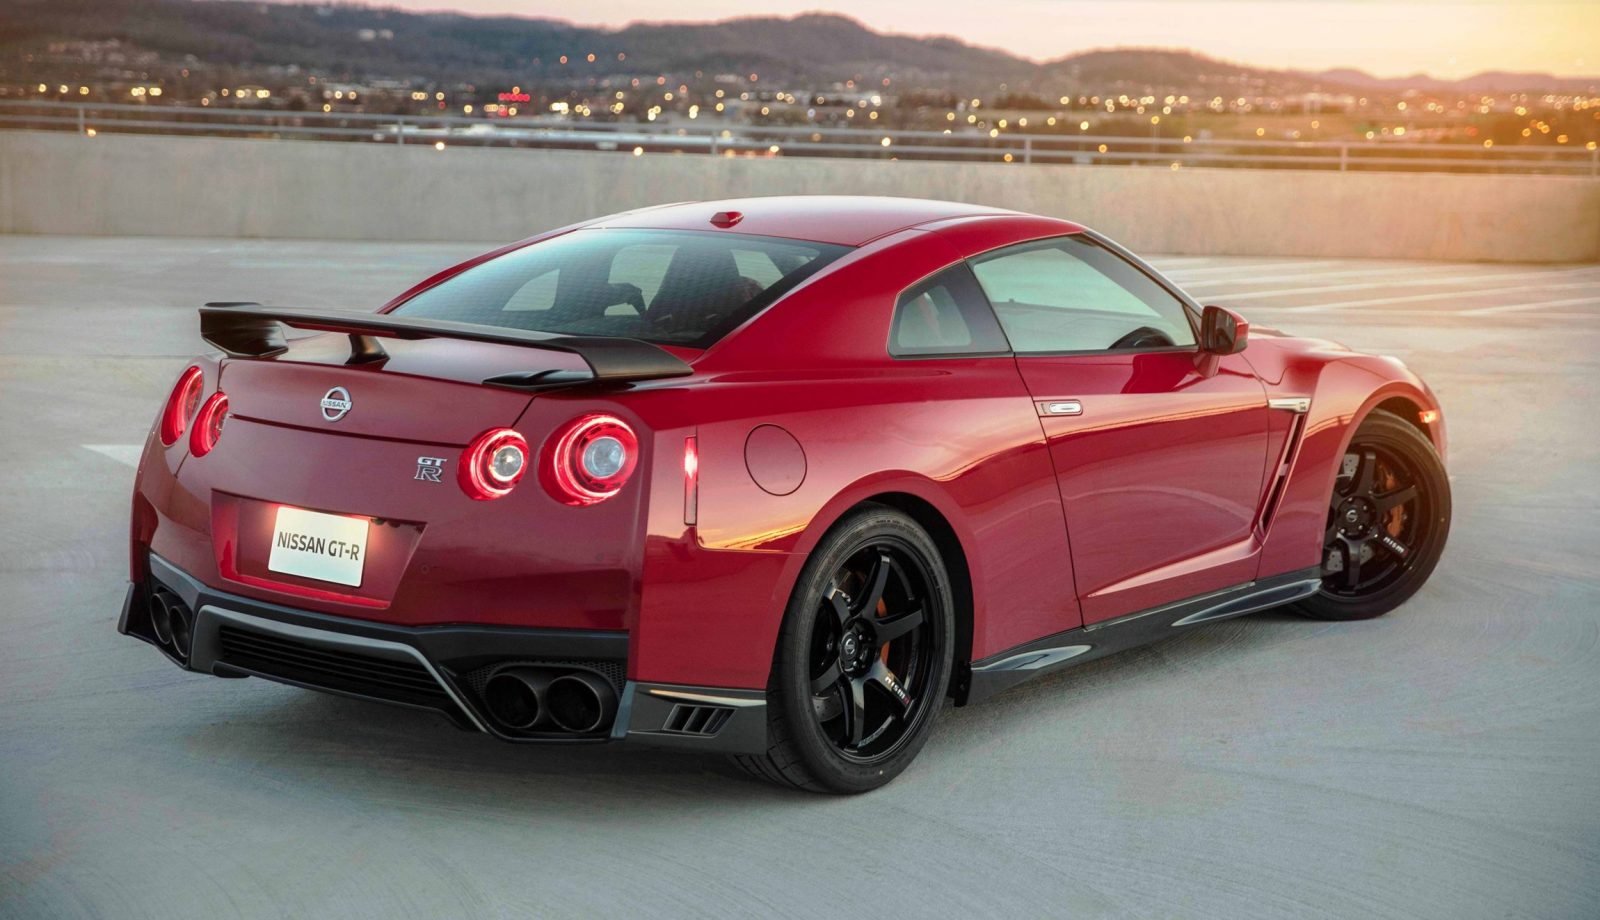 The Fresh Look Inside And Out Of 2017 GT R Premium NISMO Models Is Present In New Track Edition Highlights Include Redesigned Hood